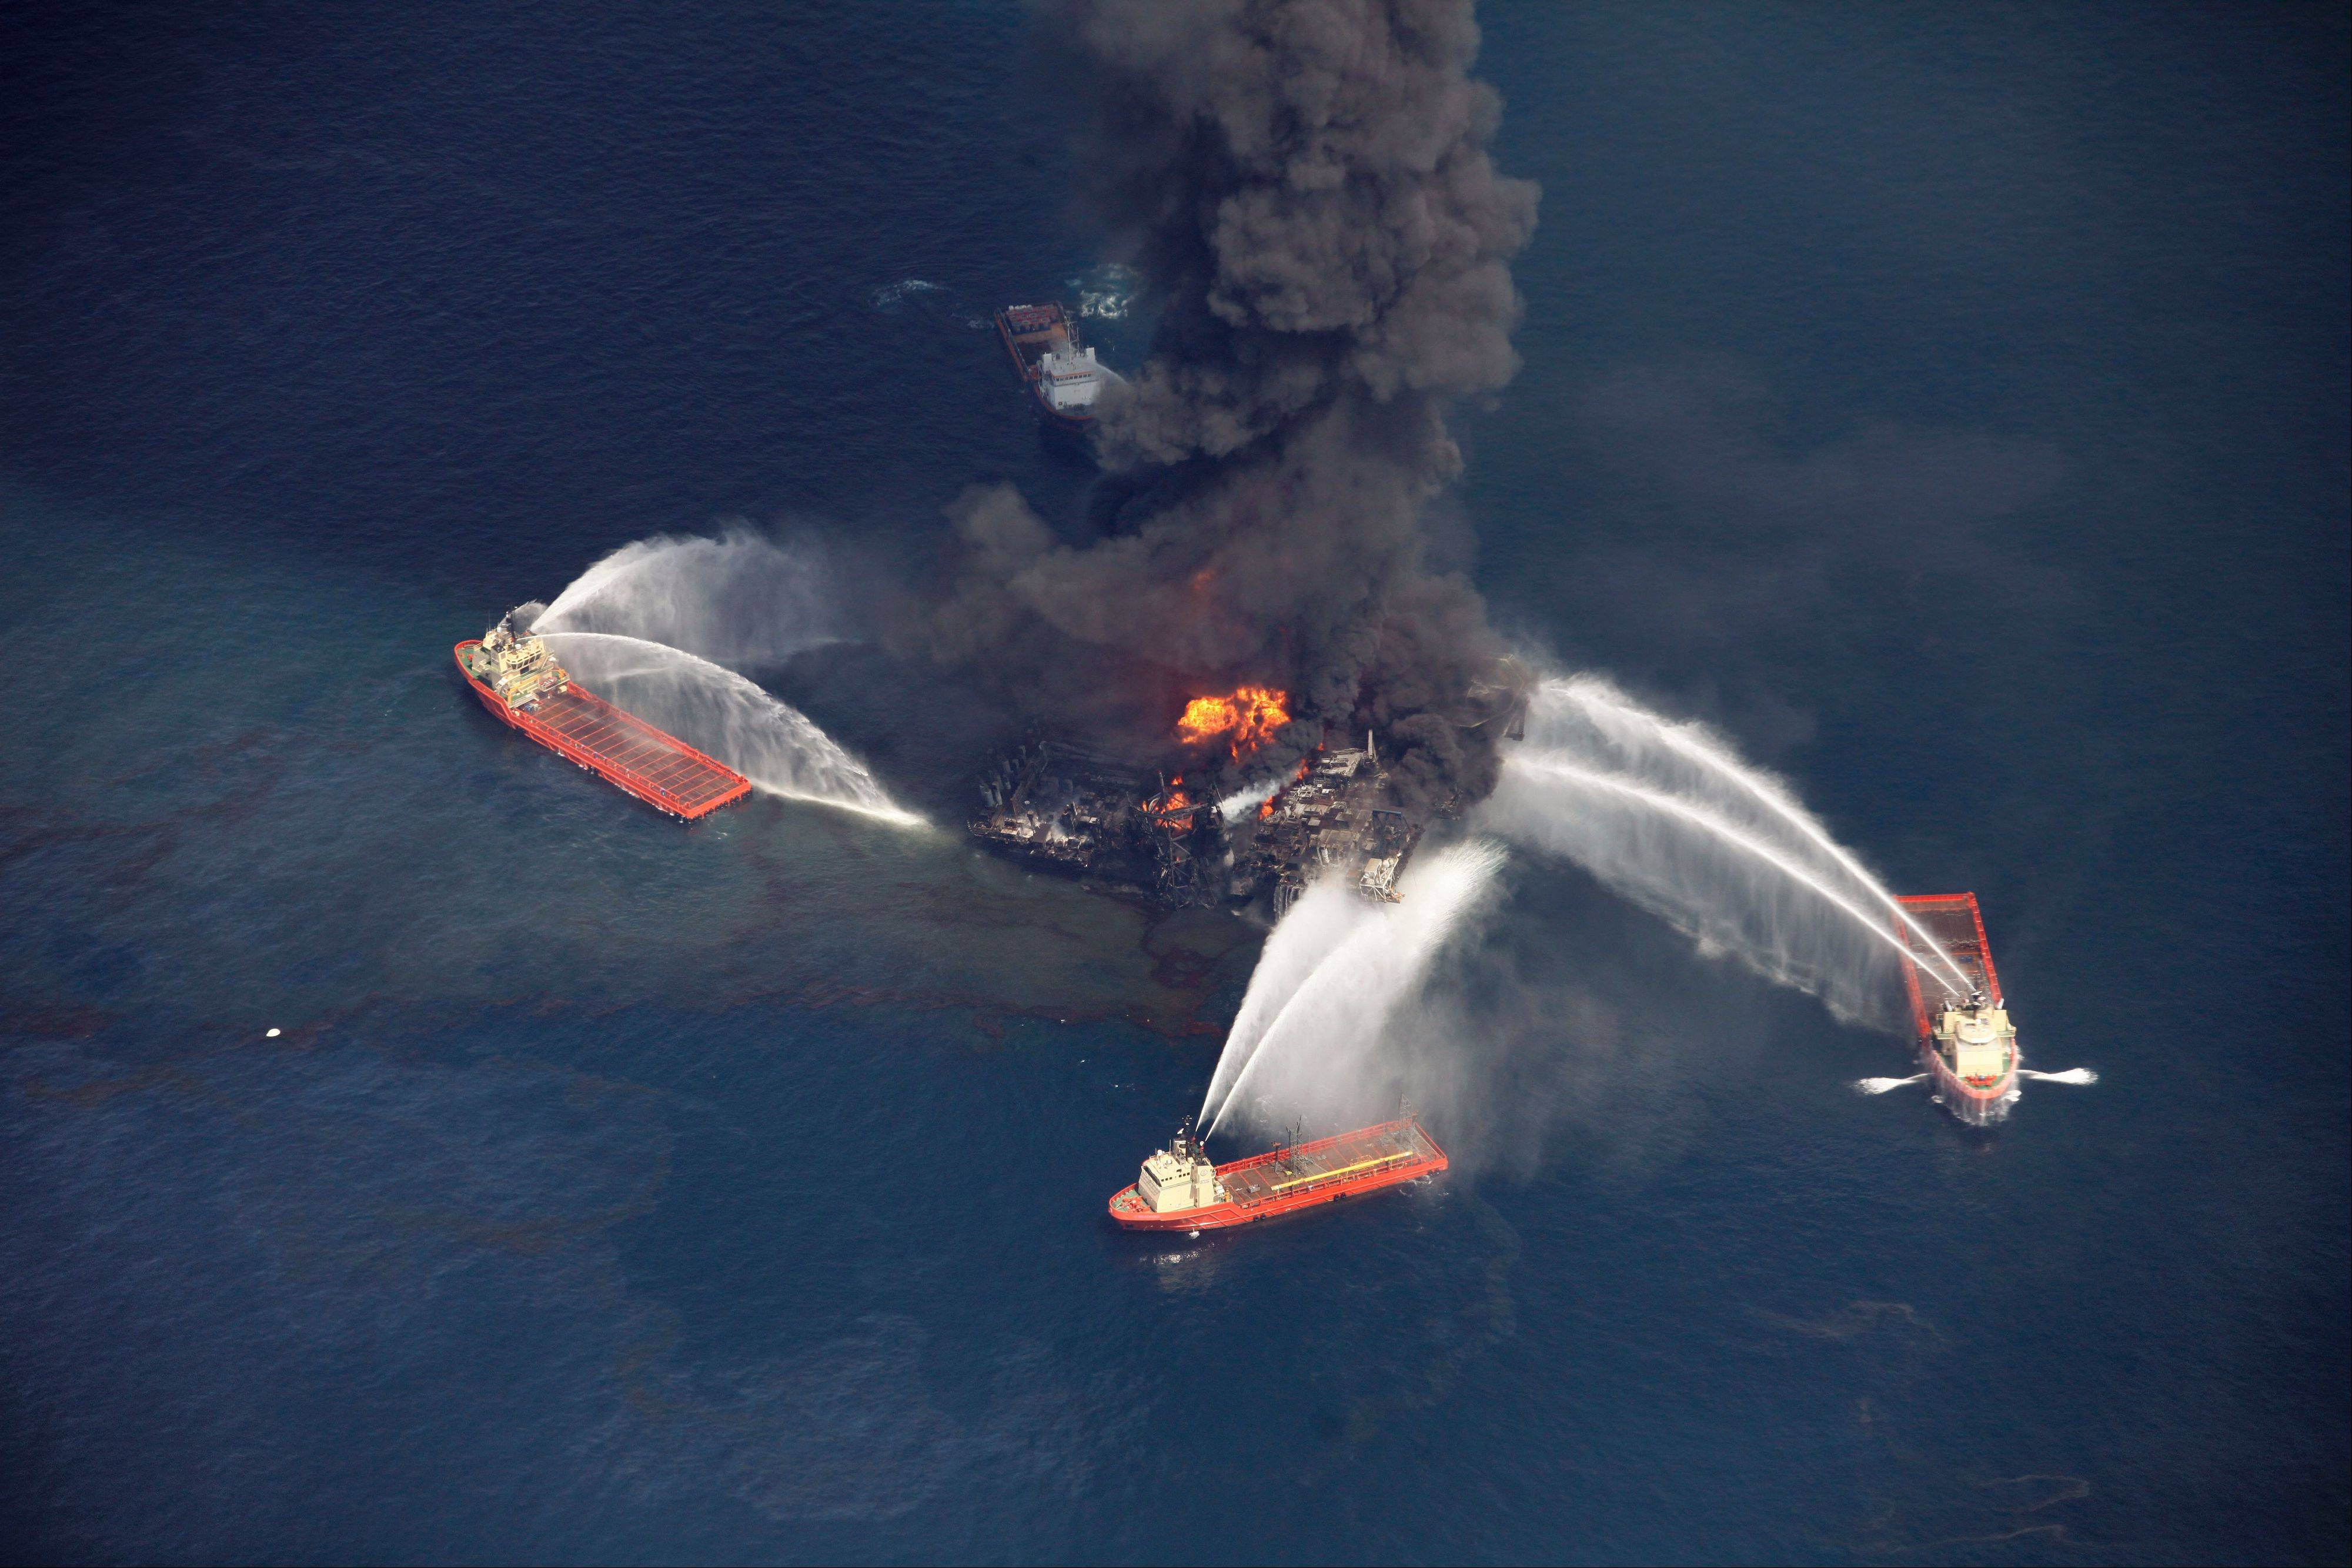 This photo from April 21, 2010, shows an oil slick as the Deepwater Horizon oil rig burns in the Gulf of Mexico, more than 50 miles southeast of Venice on Louisiana�s tip. Nearly three years after the deadly rig explosion triggered the nation�s worst offshore oil spill, a federal judge in New Orleans is set to preside over a high-stakes trial for the raft of litigation spawned by the disaster.